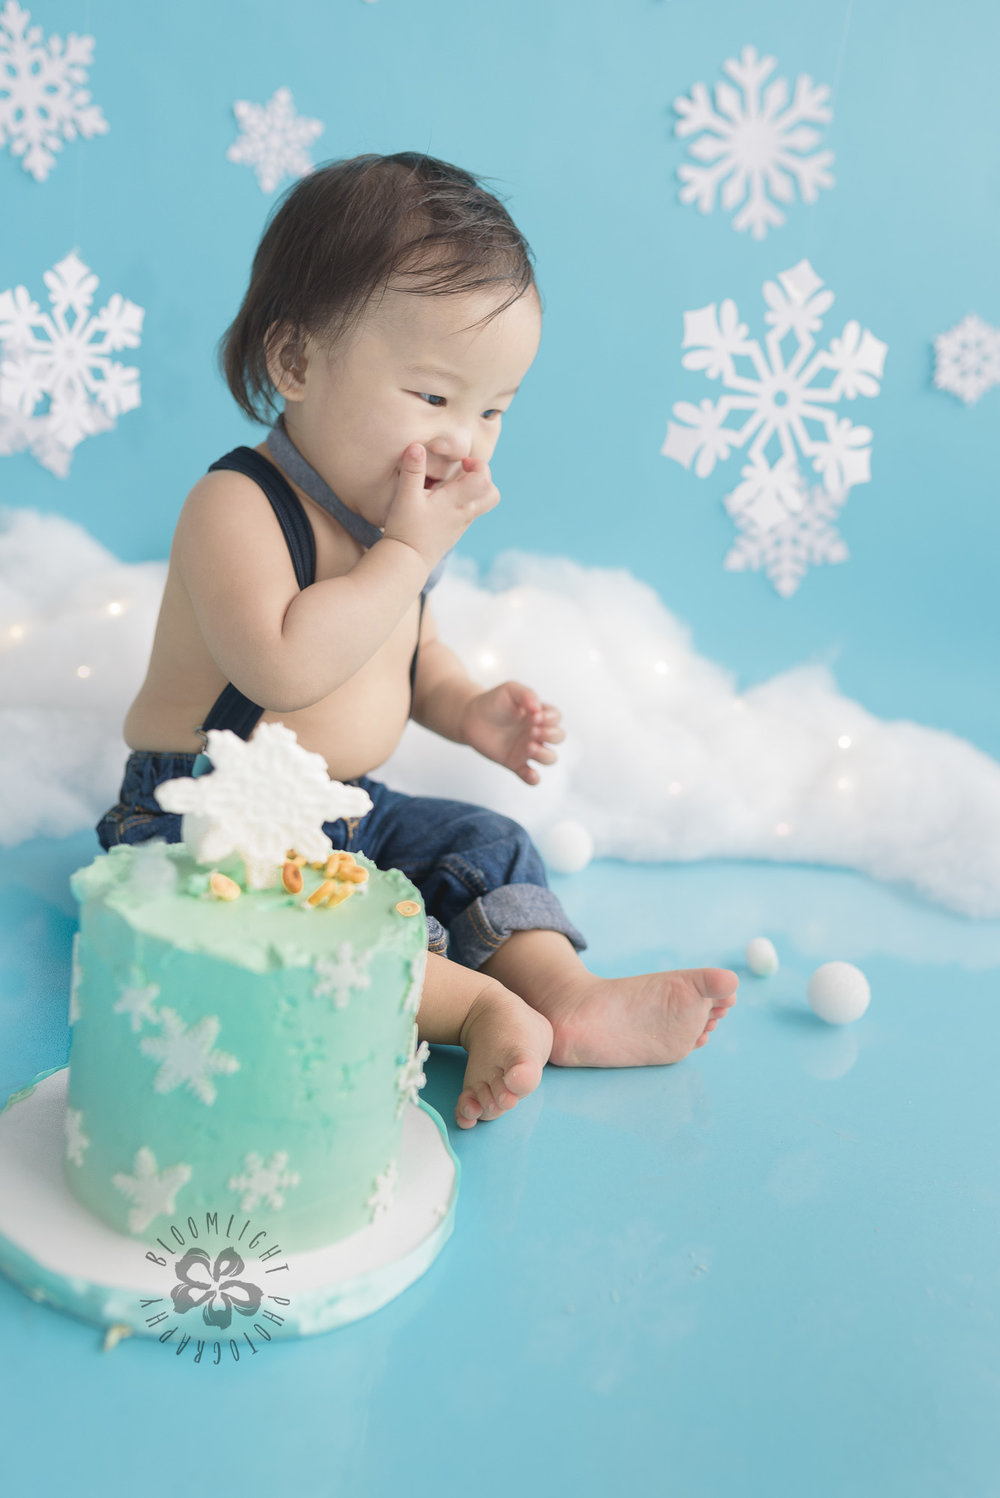 Toronto-North-York-baby-birthday-cake-smash-winter-snowflake-theme-photography (3).jpg